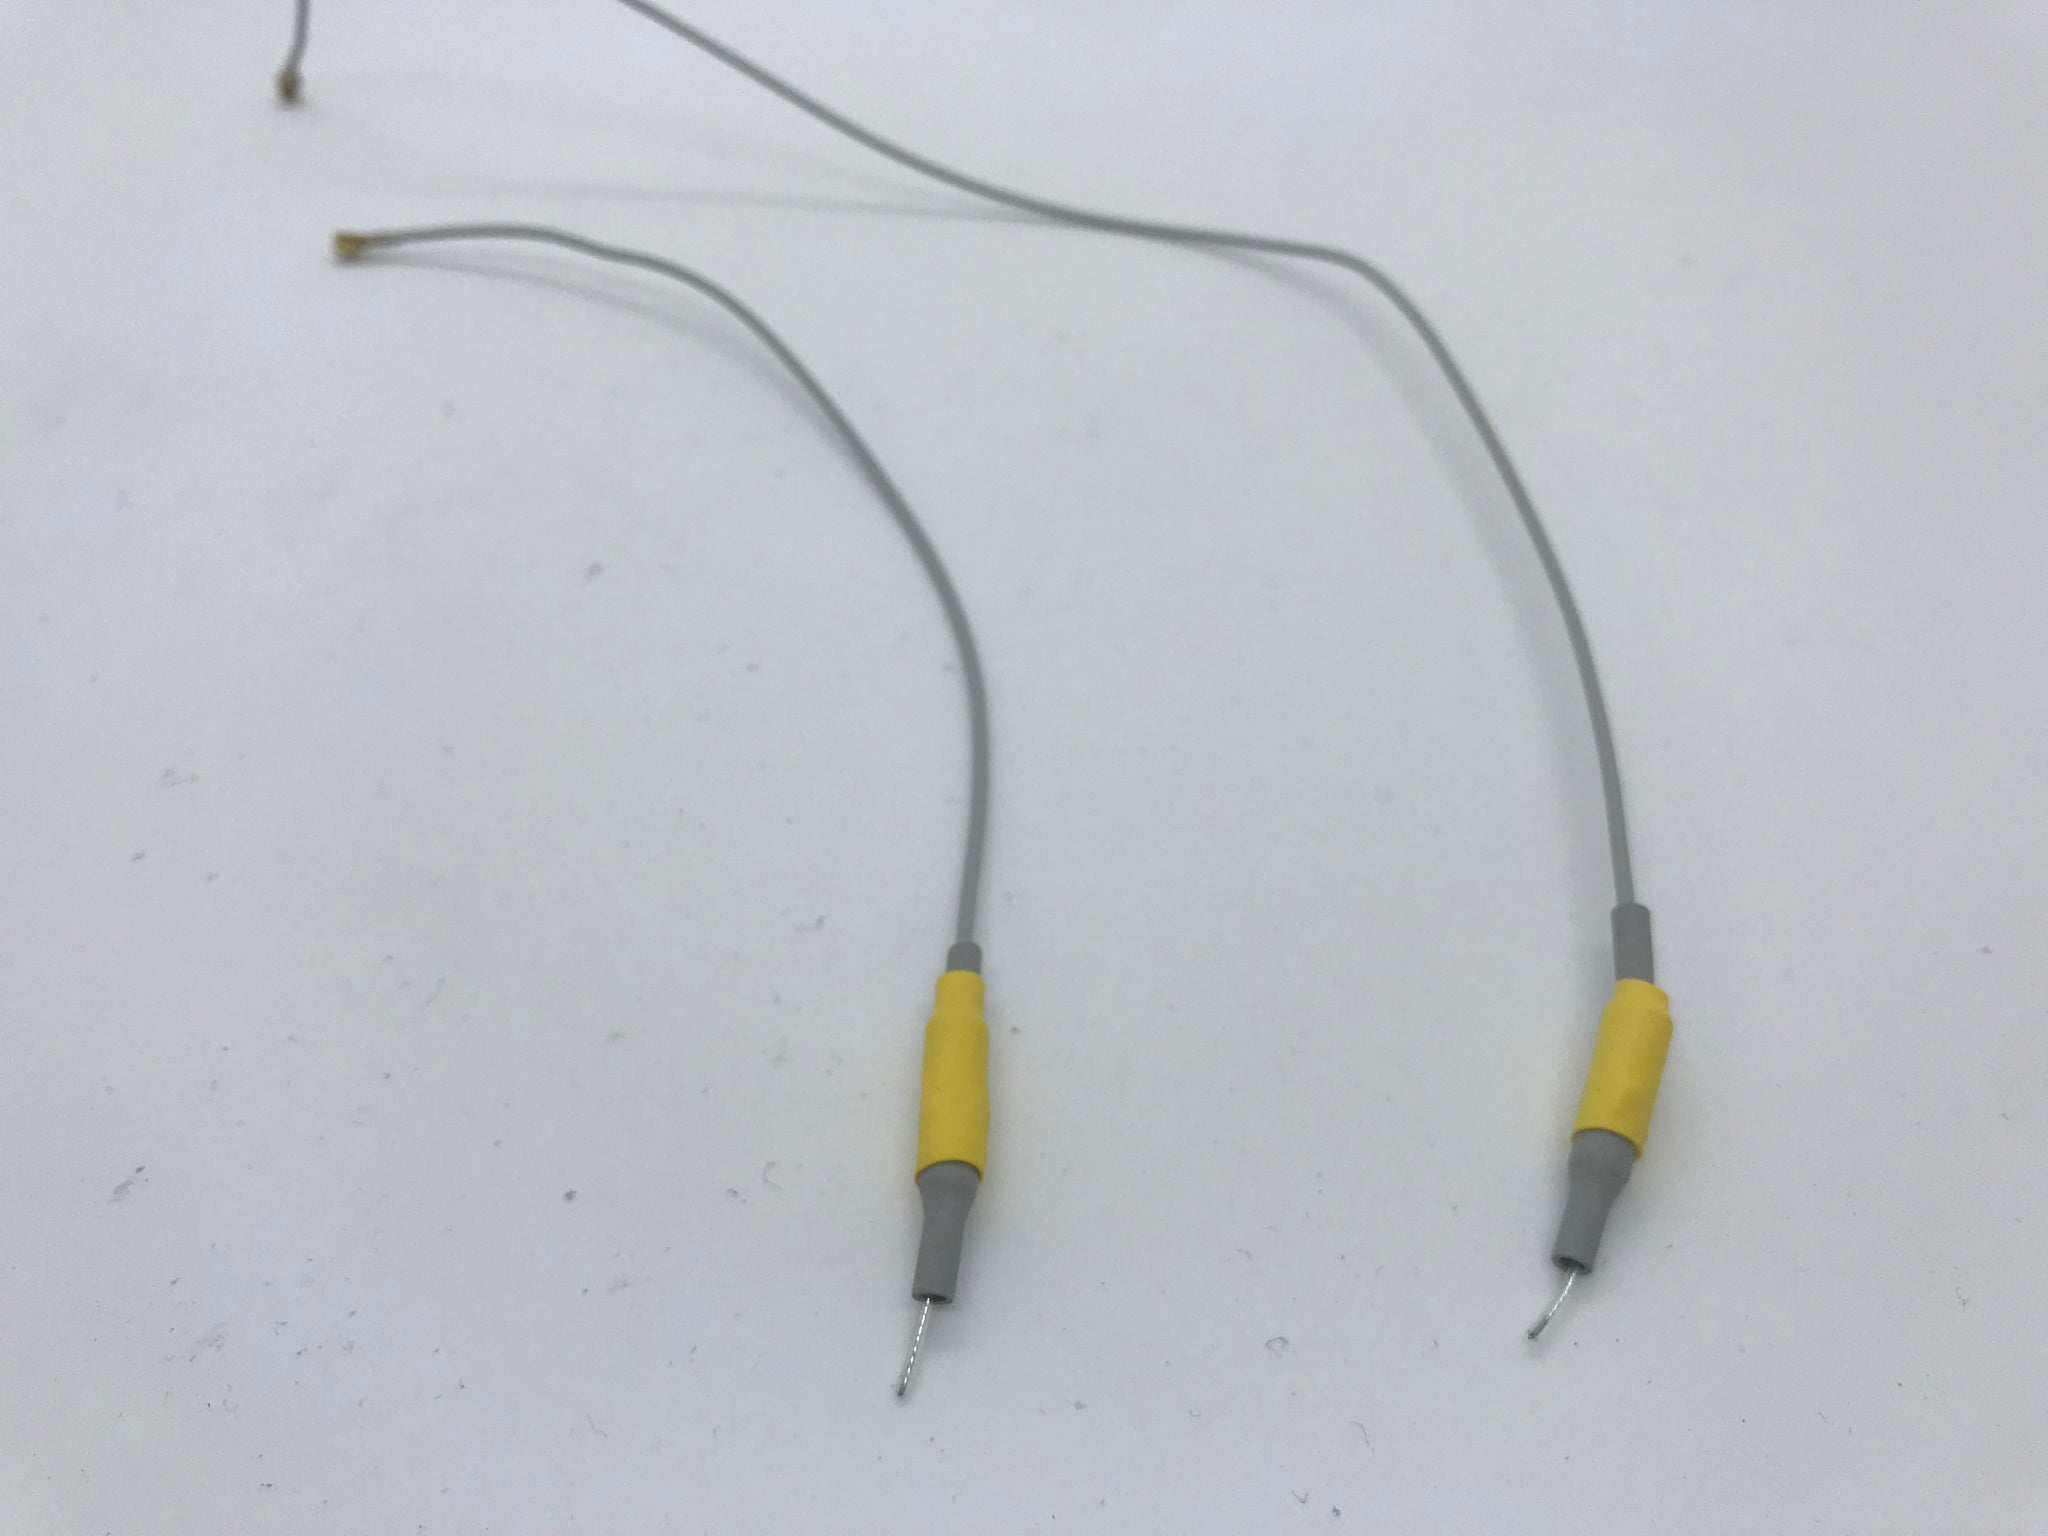 DJI Phantom 3 STANDARD 5.8ghz Antennas